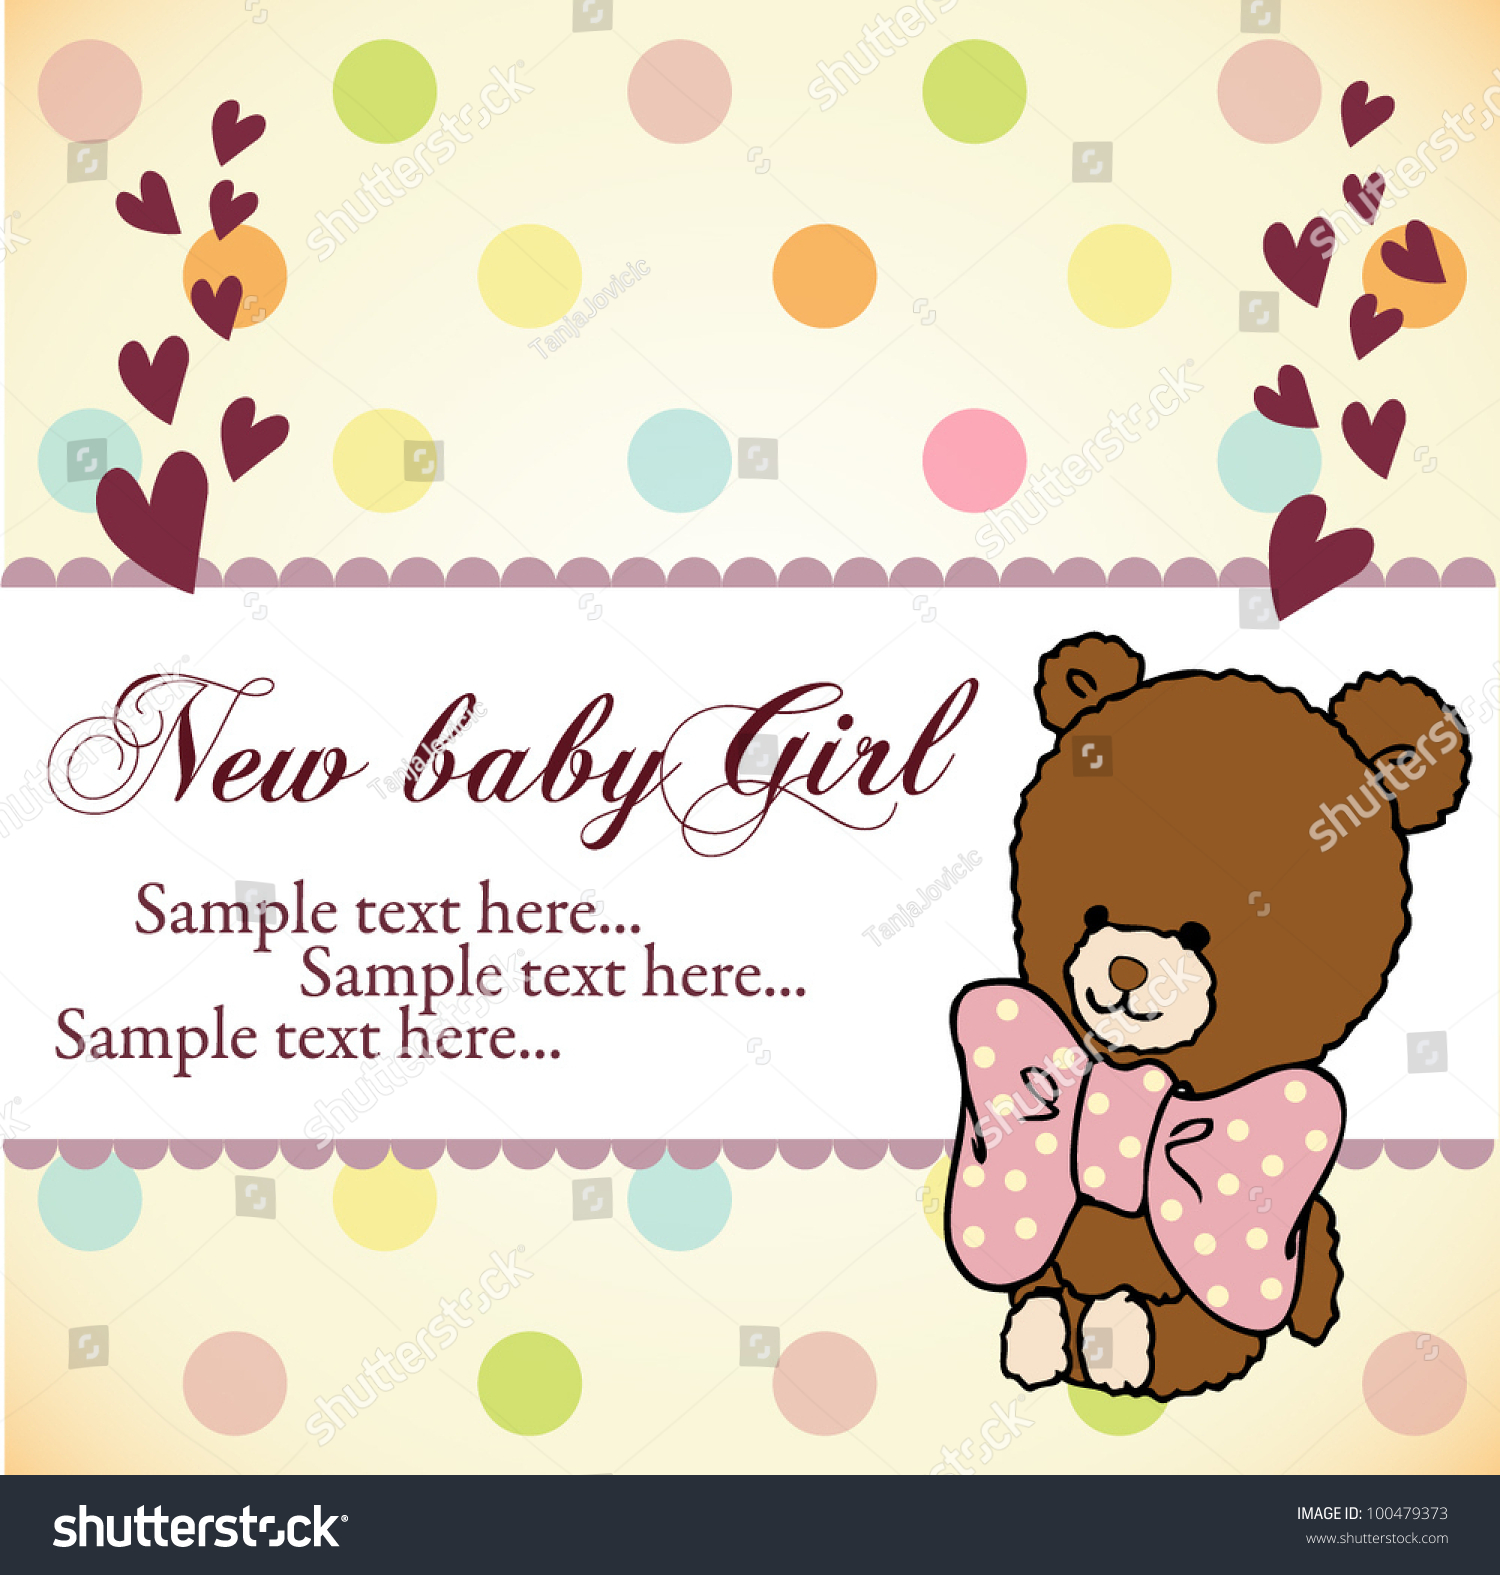 baby shower invitation card stock vector   shutterstock, Baby shower